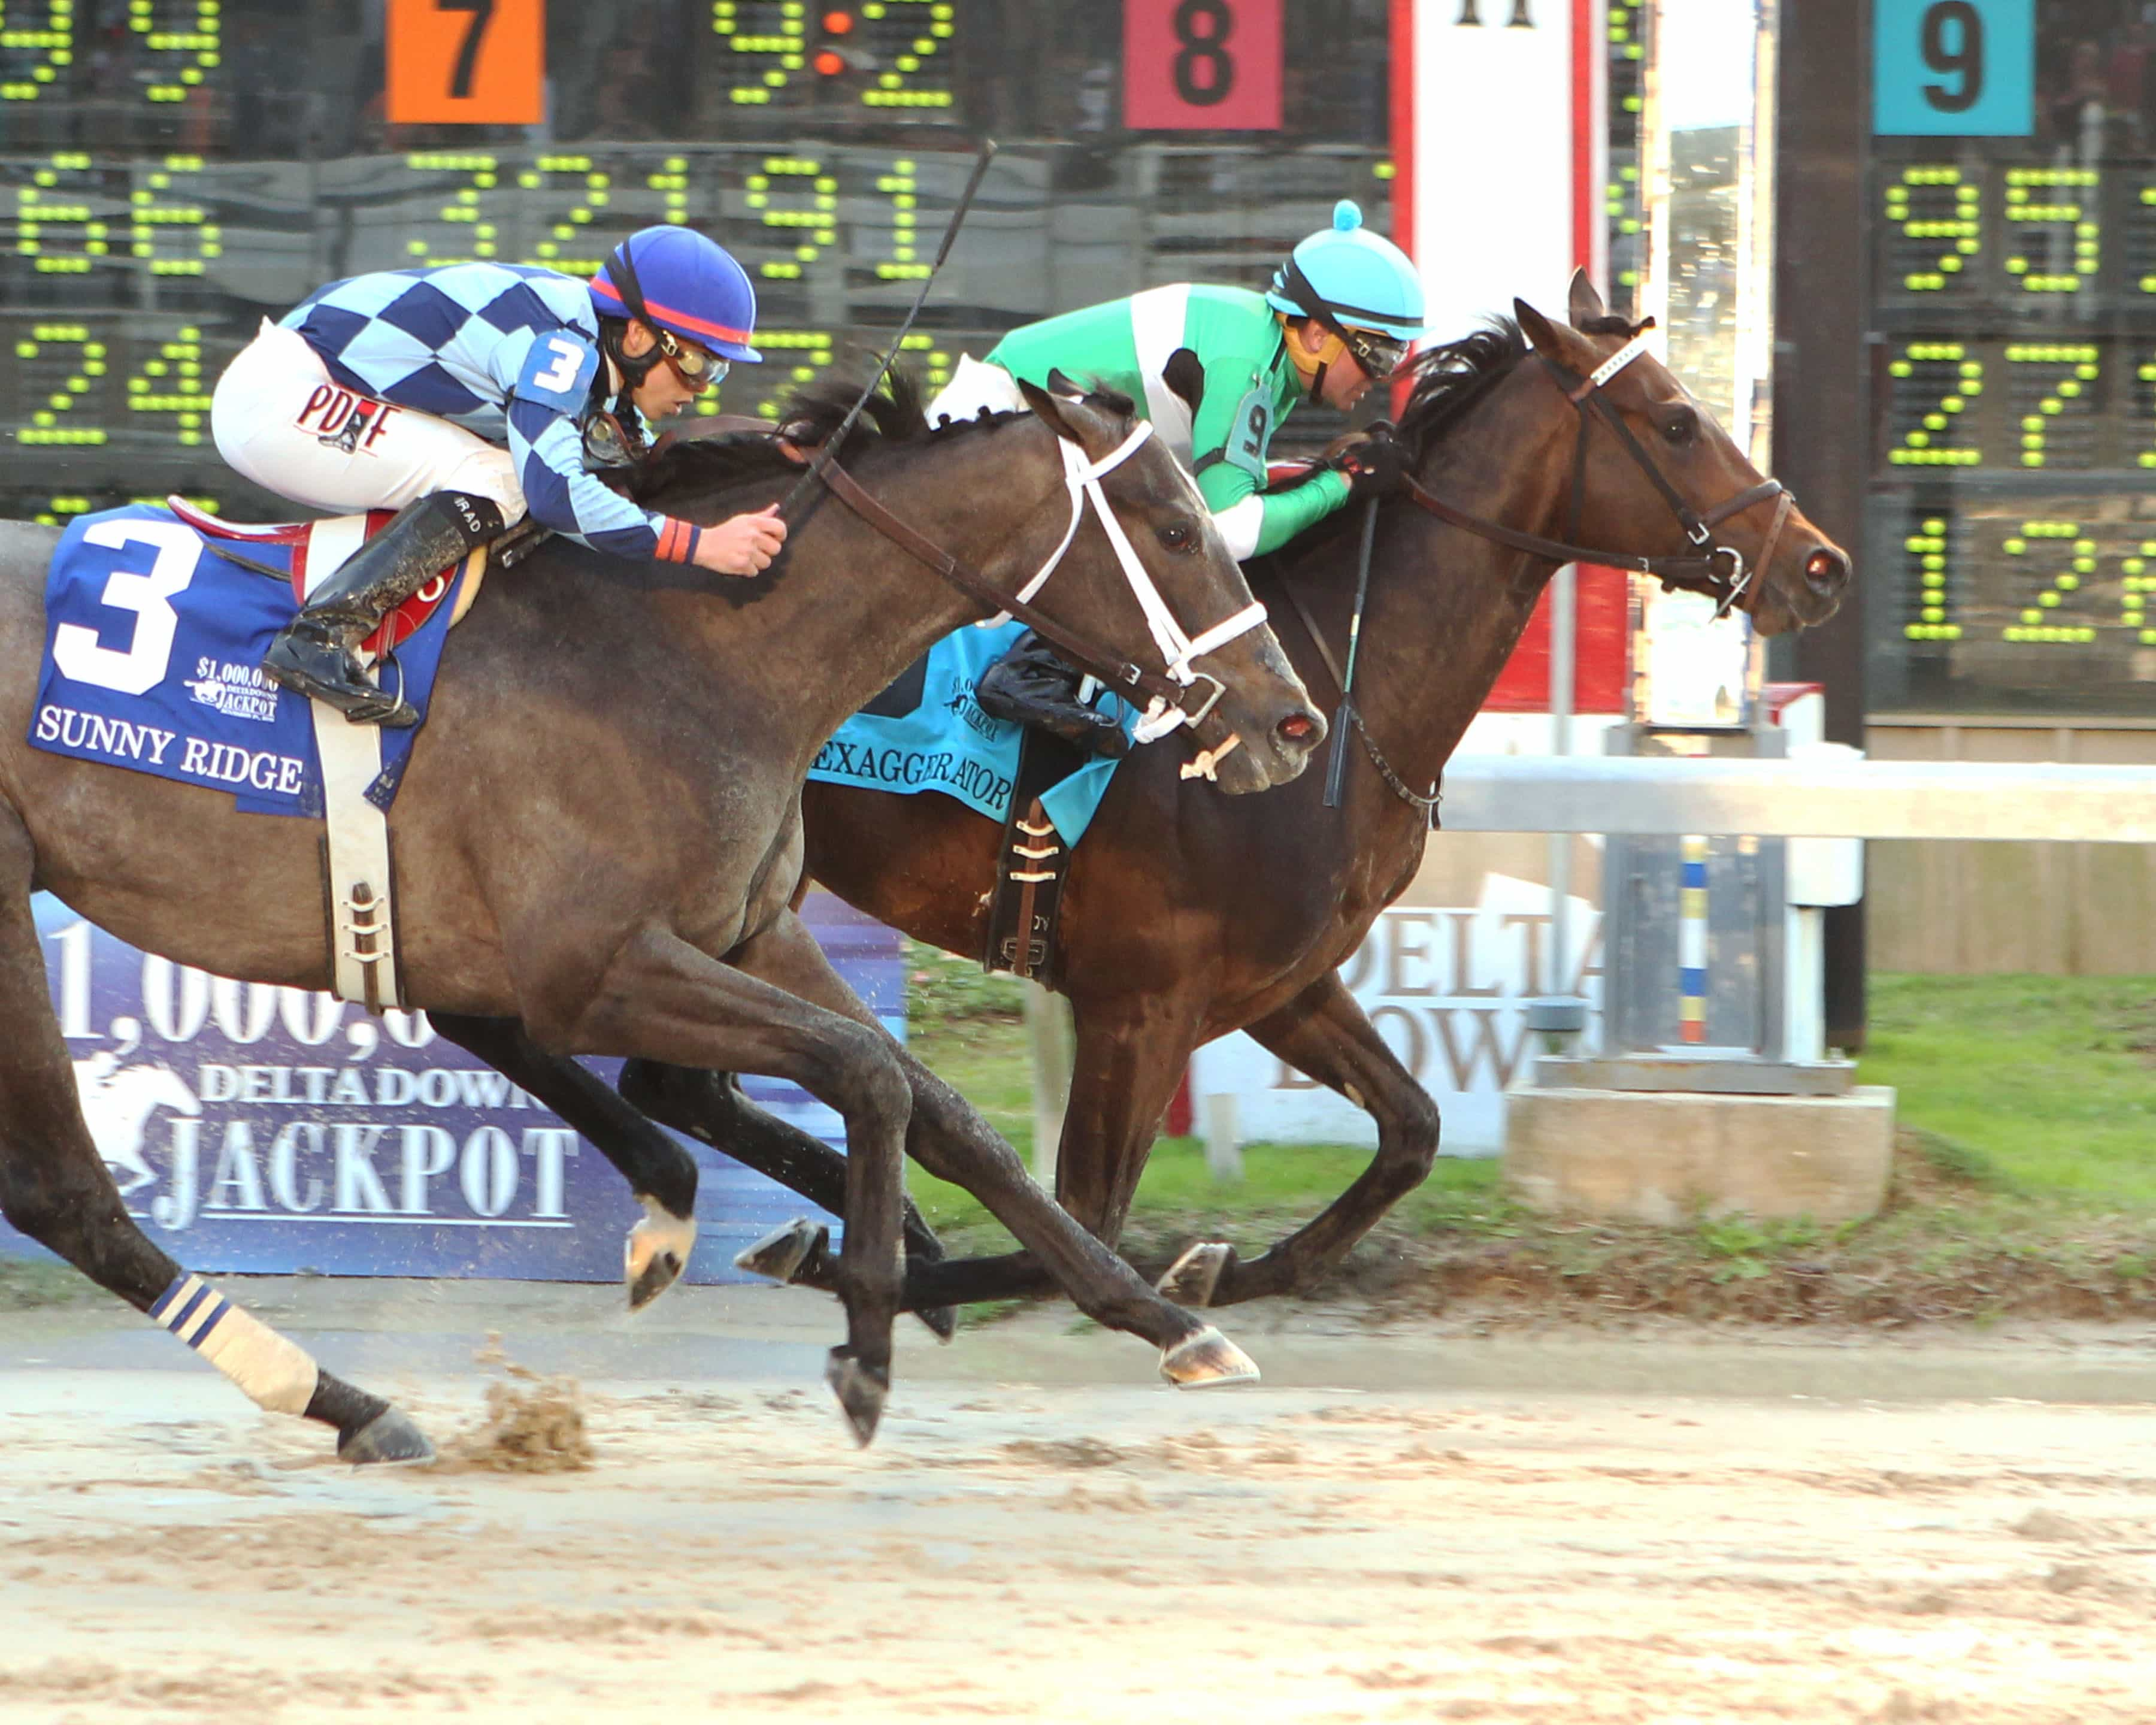 Exaggerator Holds On To Win $1,000,000 Delta Downs Jackpot - 11-21-15 - Photo Credit: Coady Photography